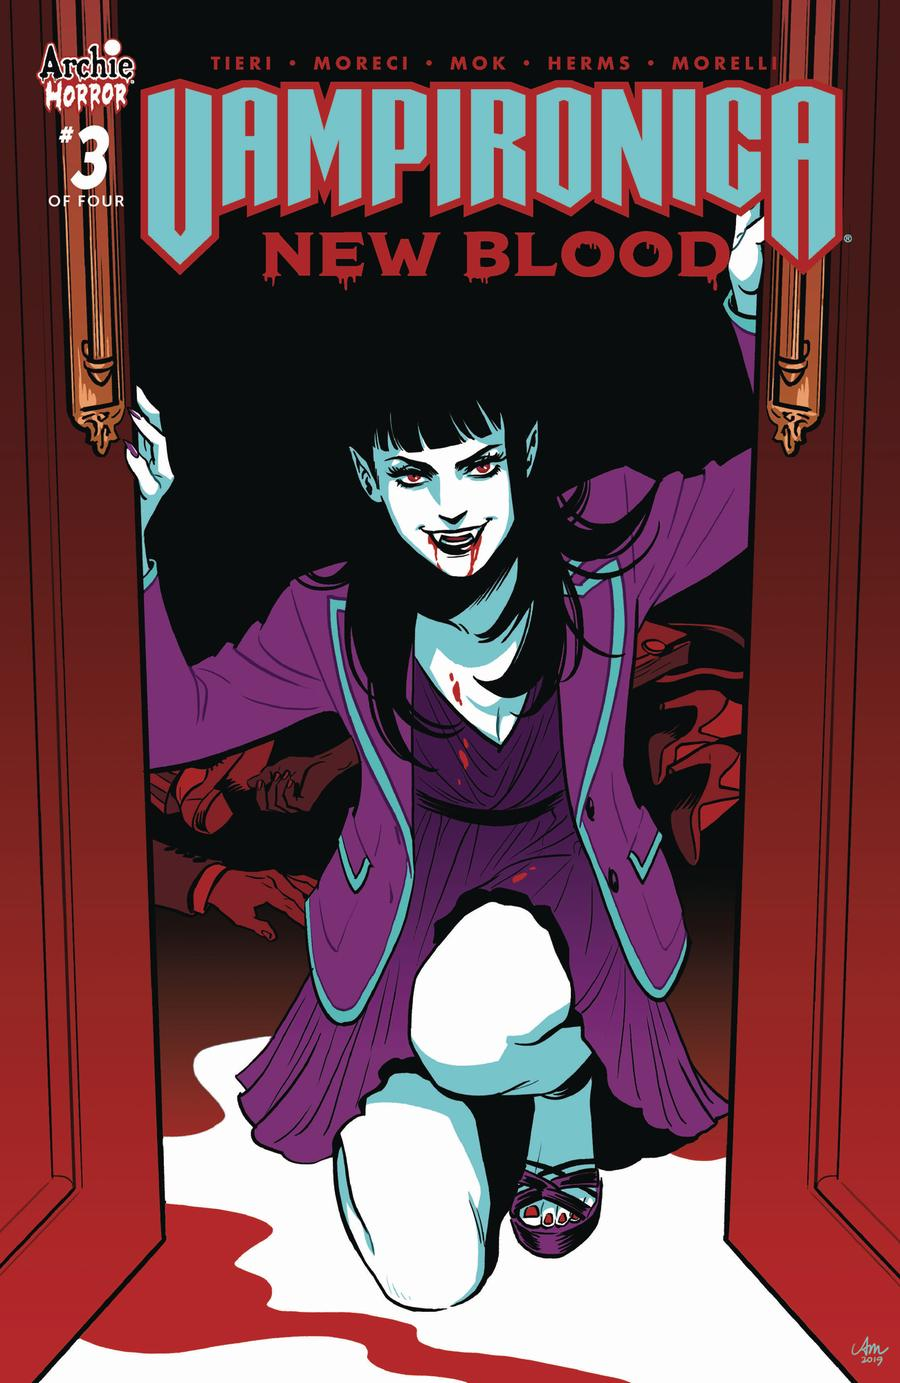 Vampironica New Blood #3 Cover A Regular Audrey Mok Cover